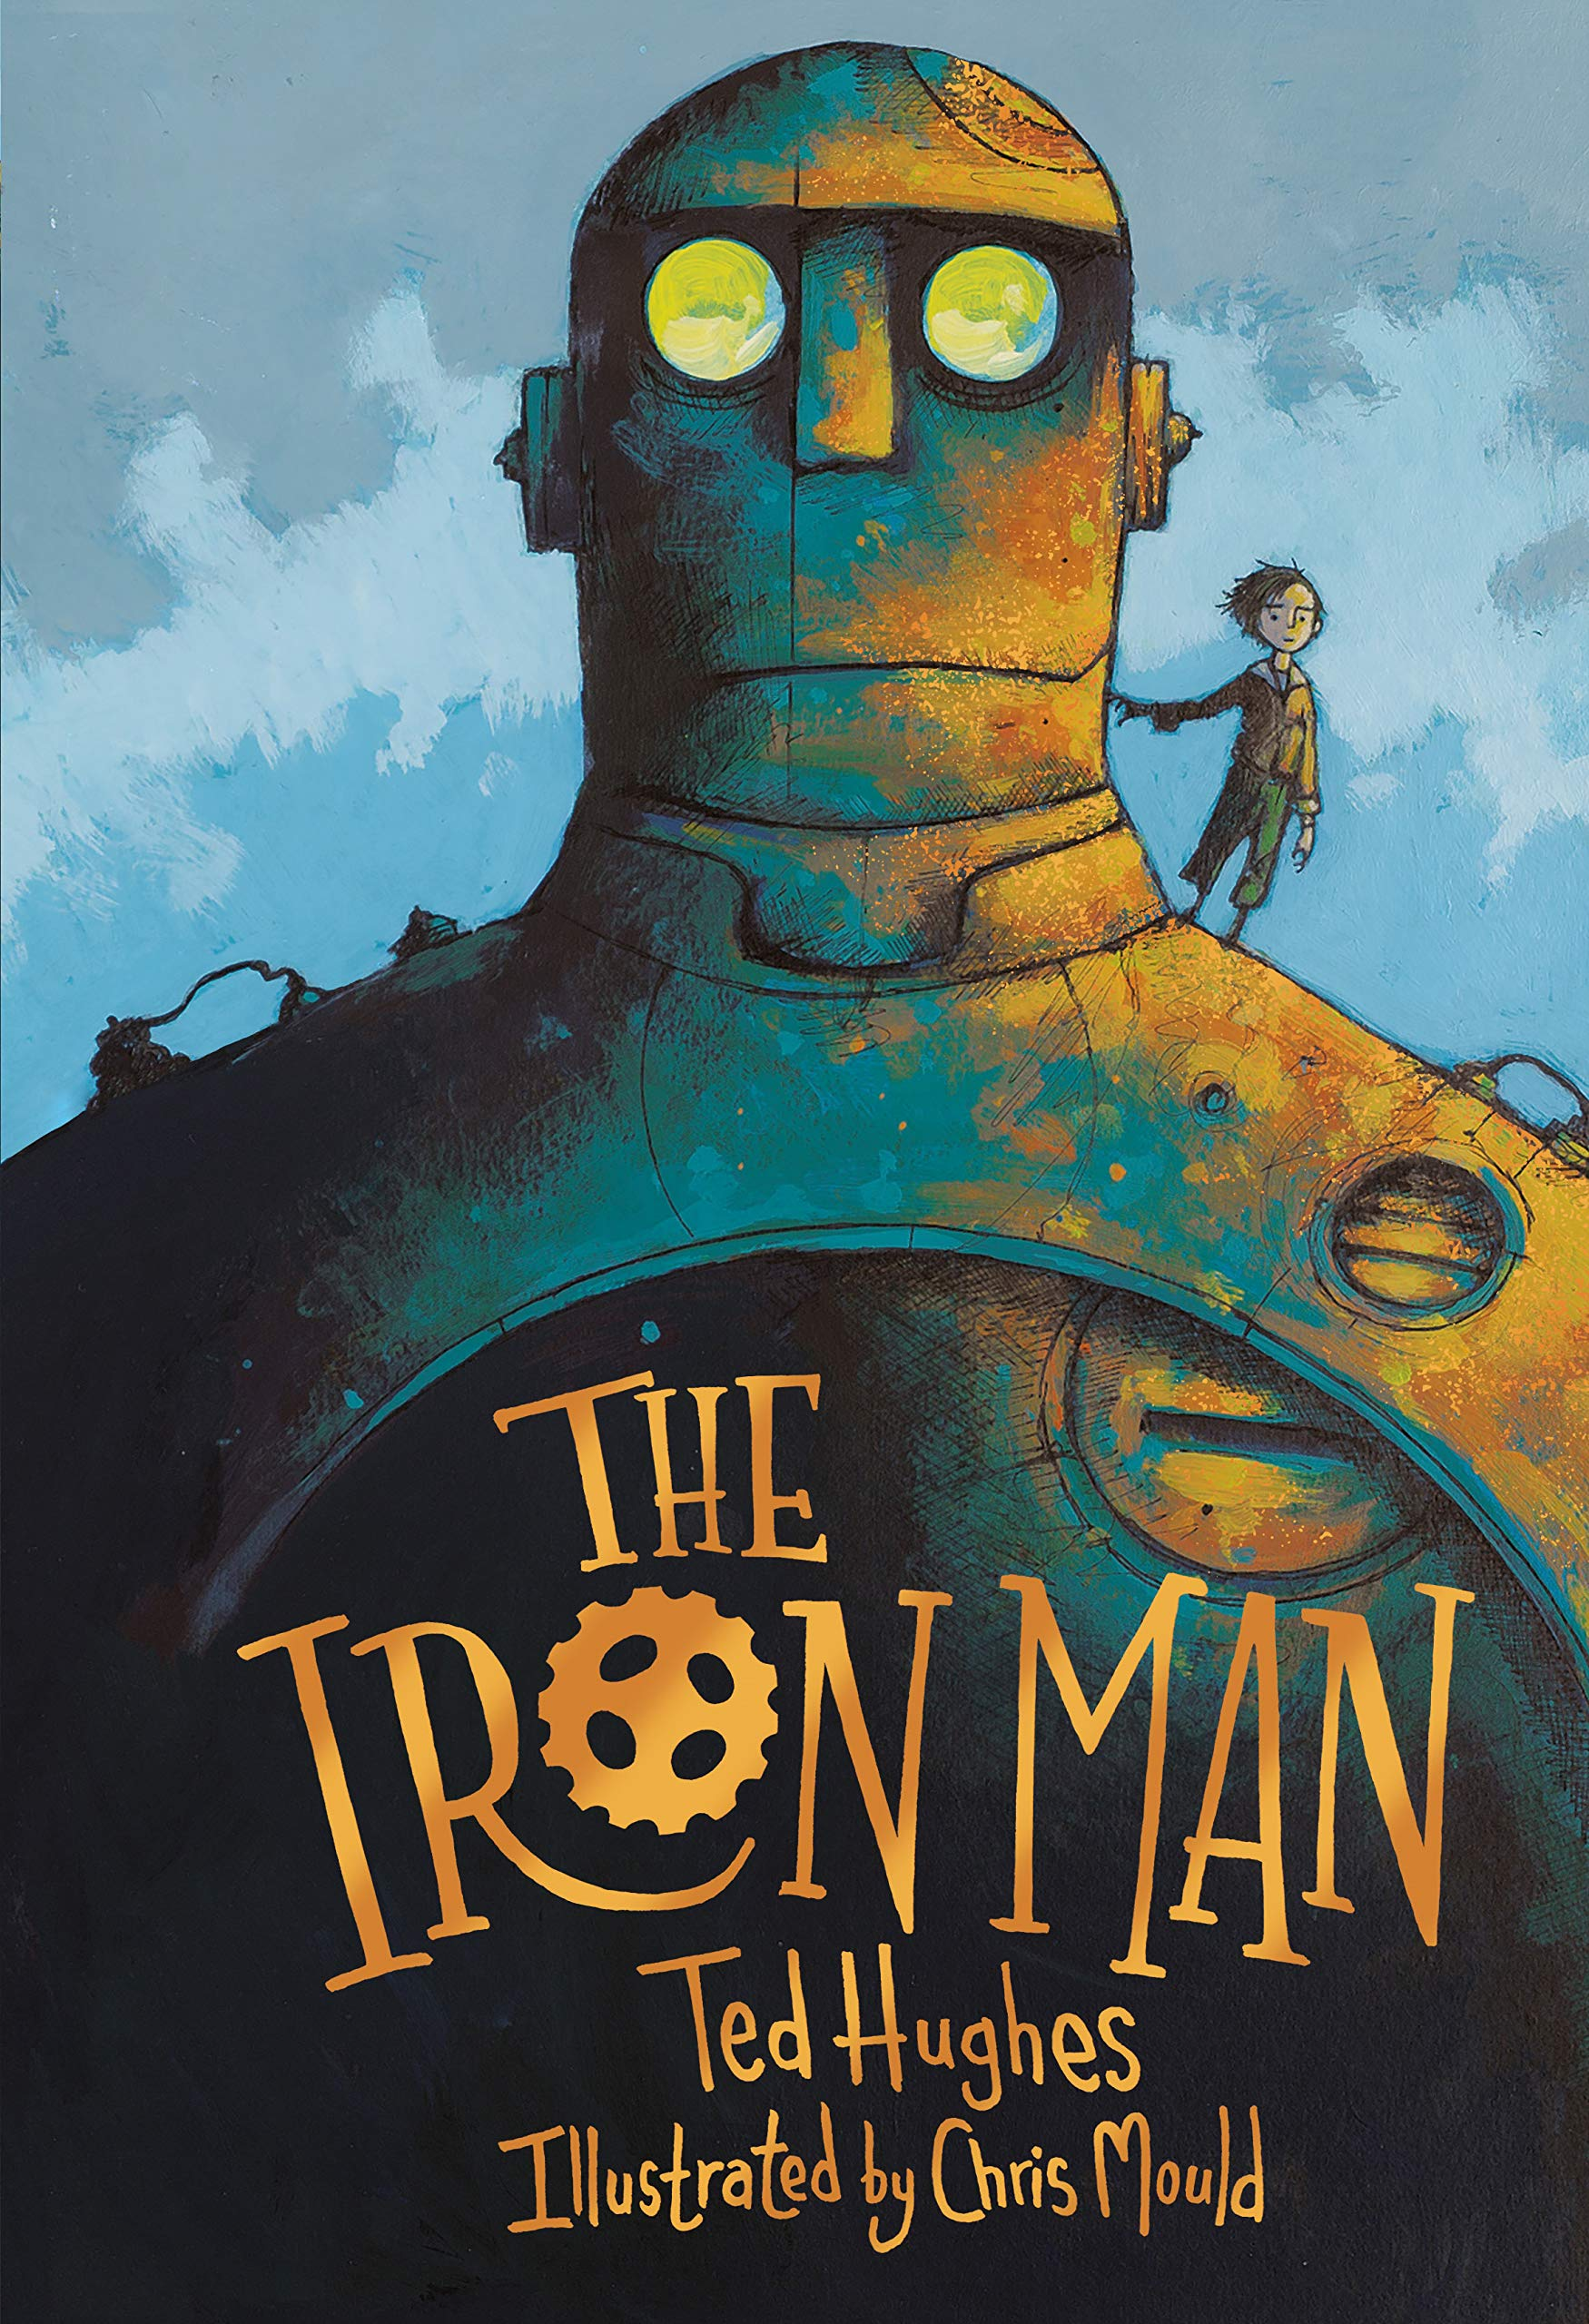 Image result for the iron man illustrated